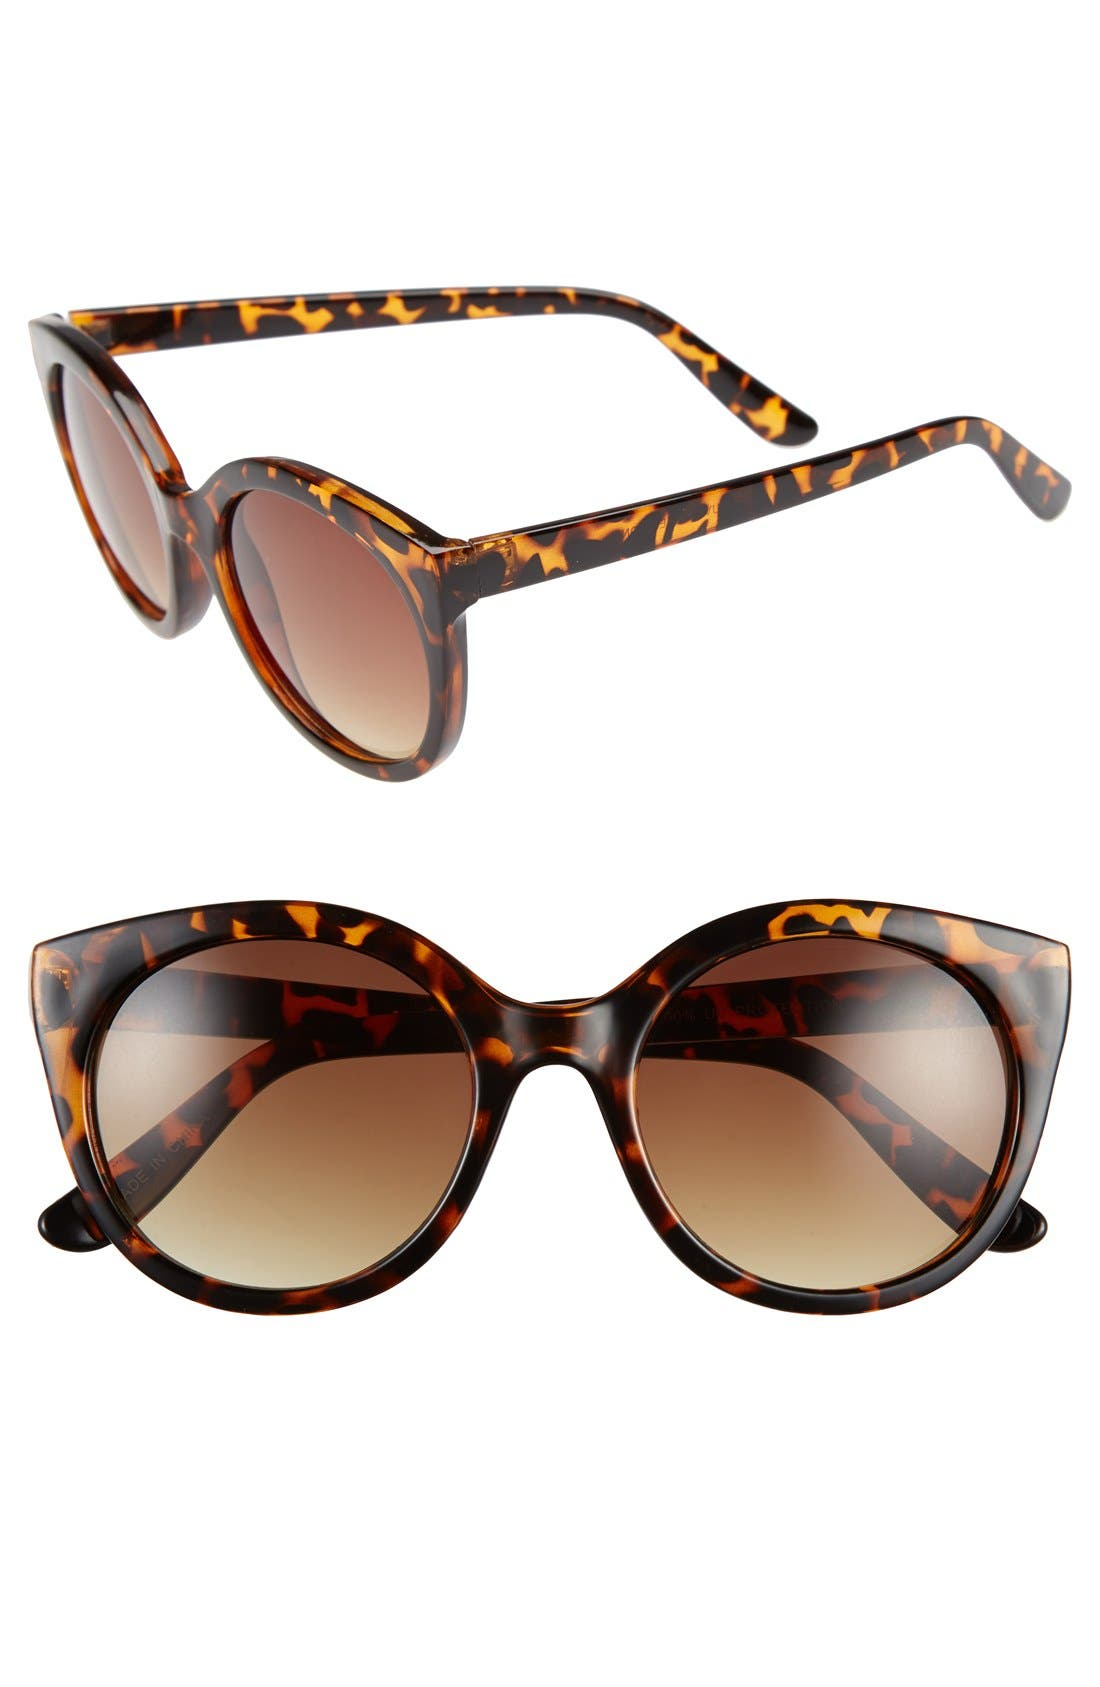 60mm Retro Sunglasses,                             Main thumbnail 1, color,                             200